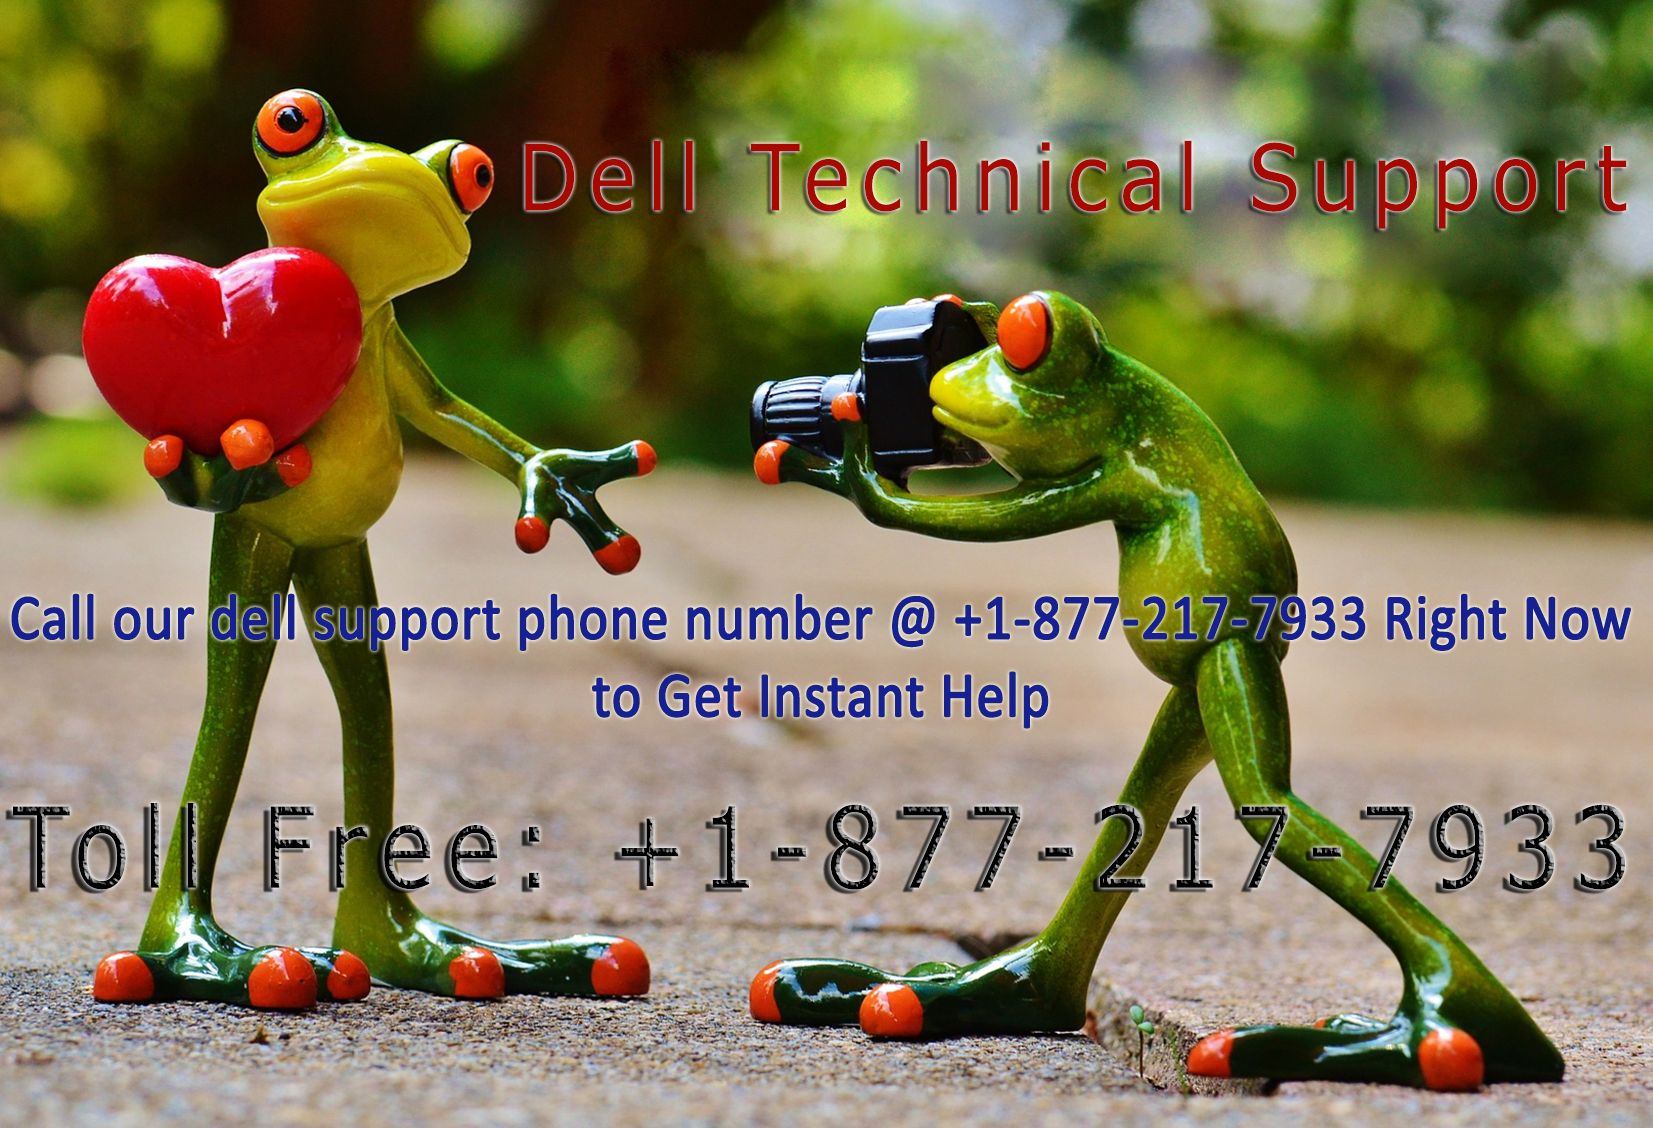 Are you looking for dell help number, dial our toll-free 1-877-217-7933 number we have team of best technicians to fix your Dell products problem including software issues, networking problem, wireless connectivity error, antivirus problem and virus removal related technical issues.